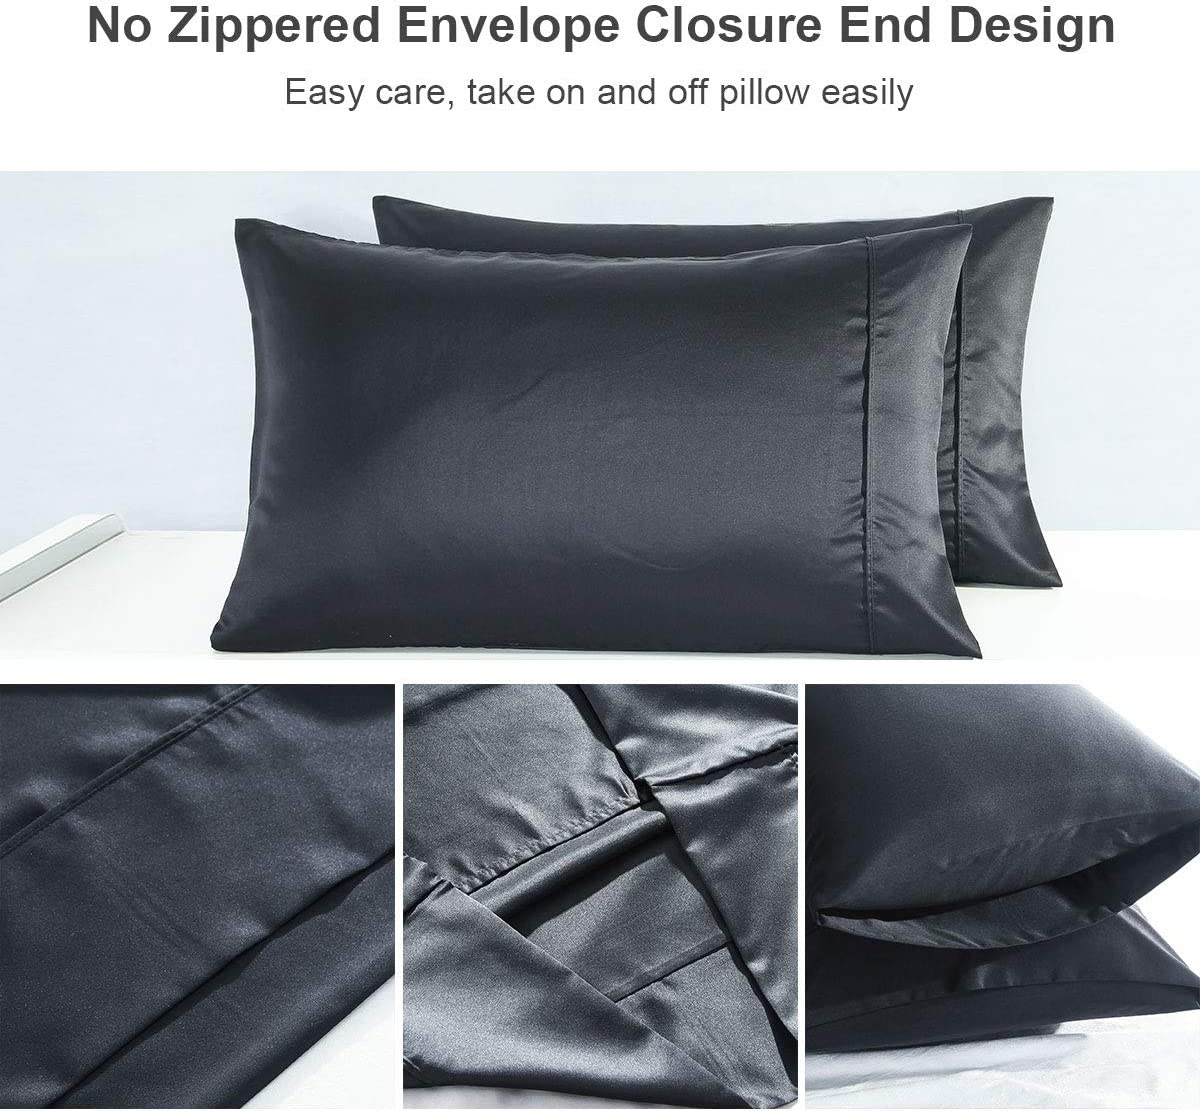 Black, Queen Size 20x30 RUIKASI Silky Satin Pillowcases Set of 2 Queen Size 20x30 inches Luxury Pillow Covers with Envelope Closure Anti Wrinkle Prevent Hair Loss Hypoallergenic Wash-Resistant Soft Pillow Shams